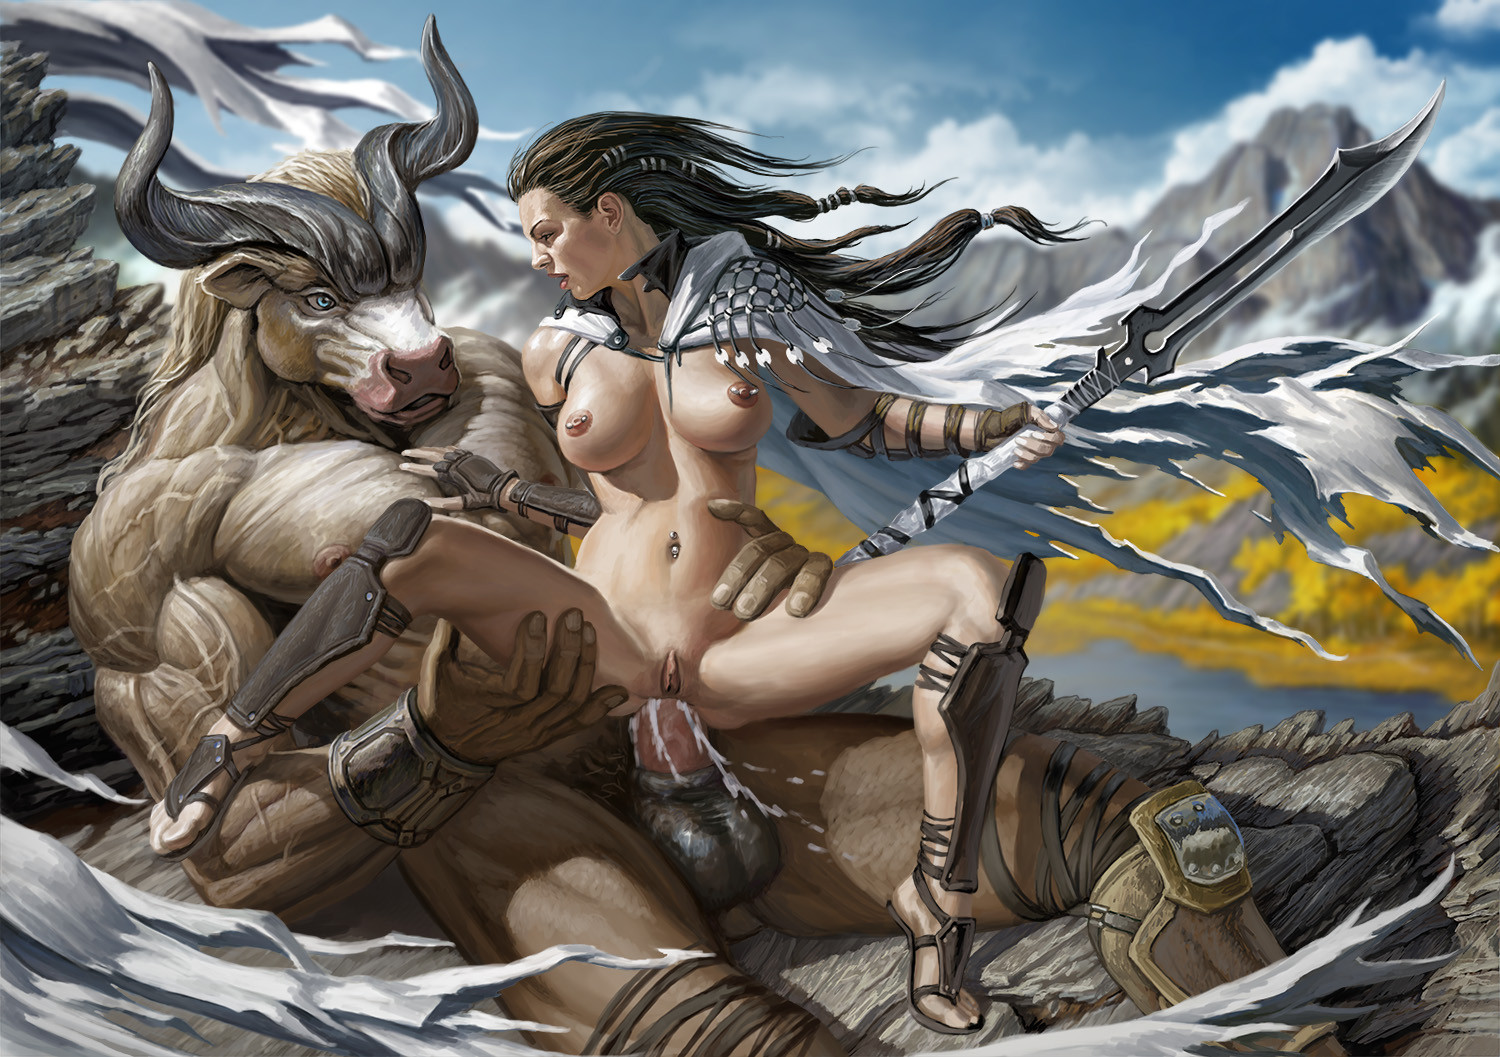 Fantasy porn artworks anime pictures